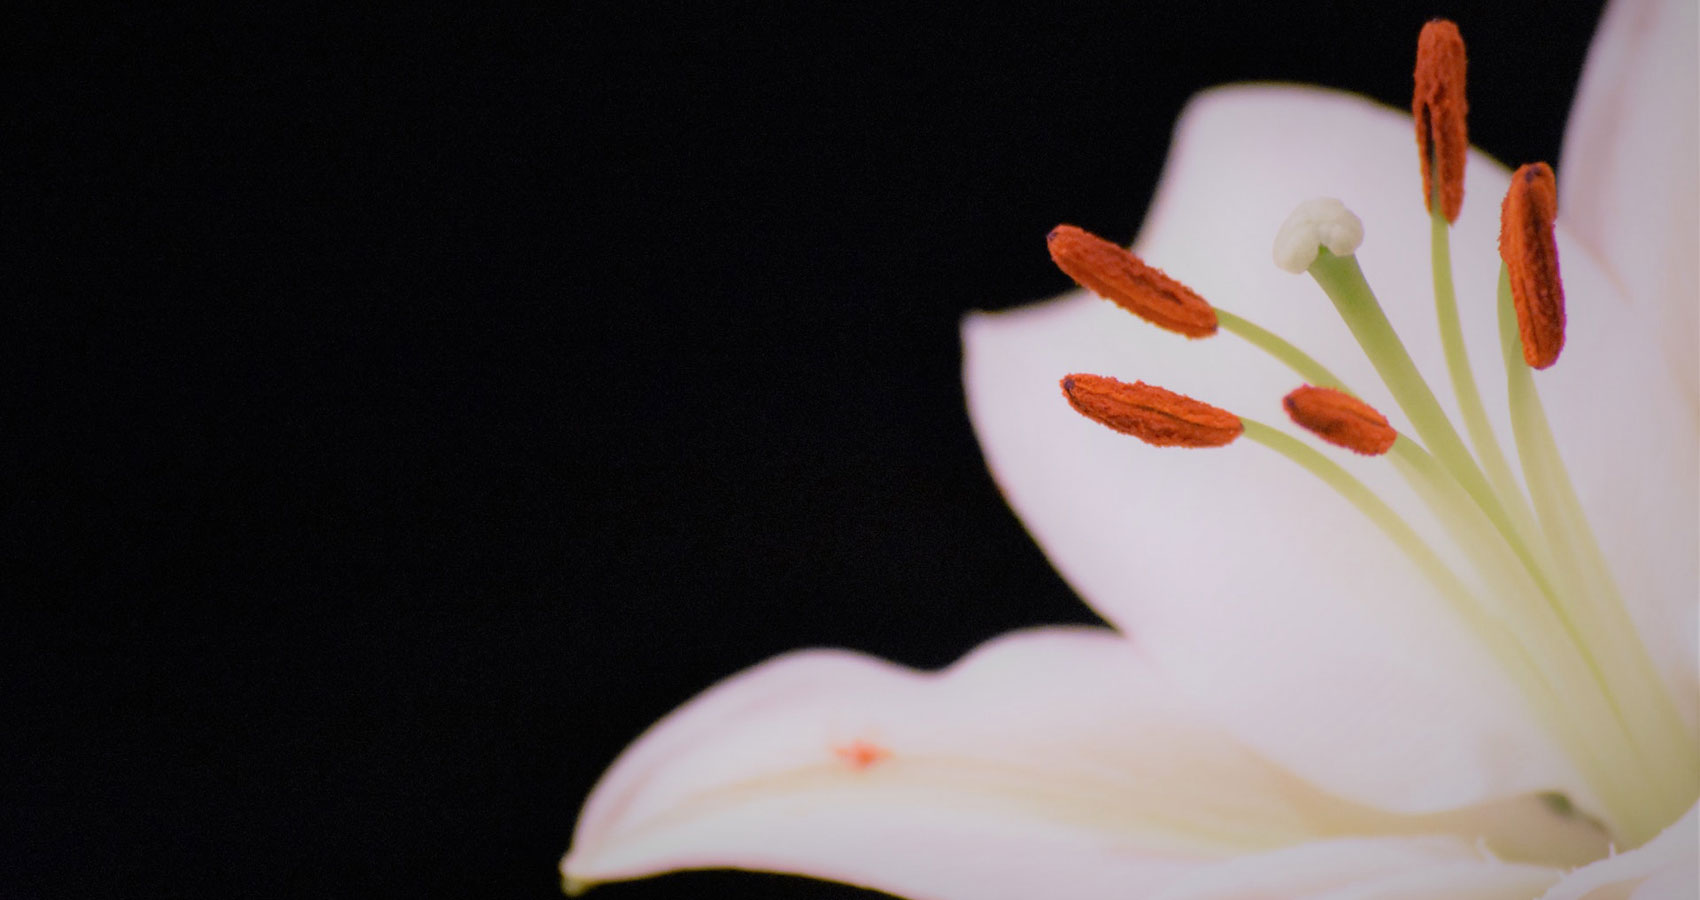 White Lilies, a micropoem written by James Bell at Spillwords.com